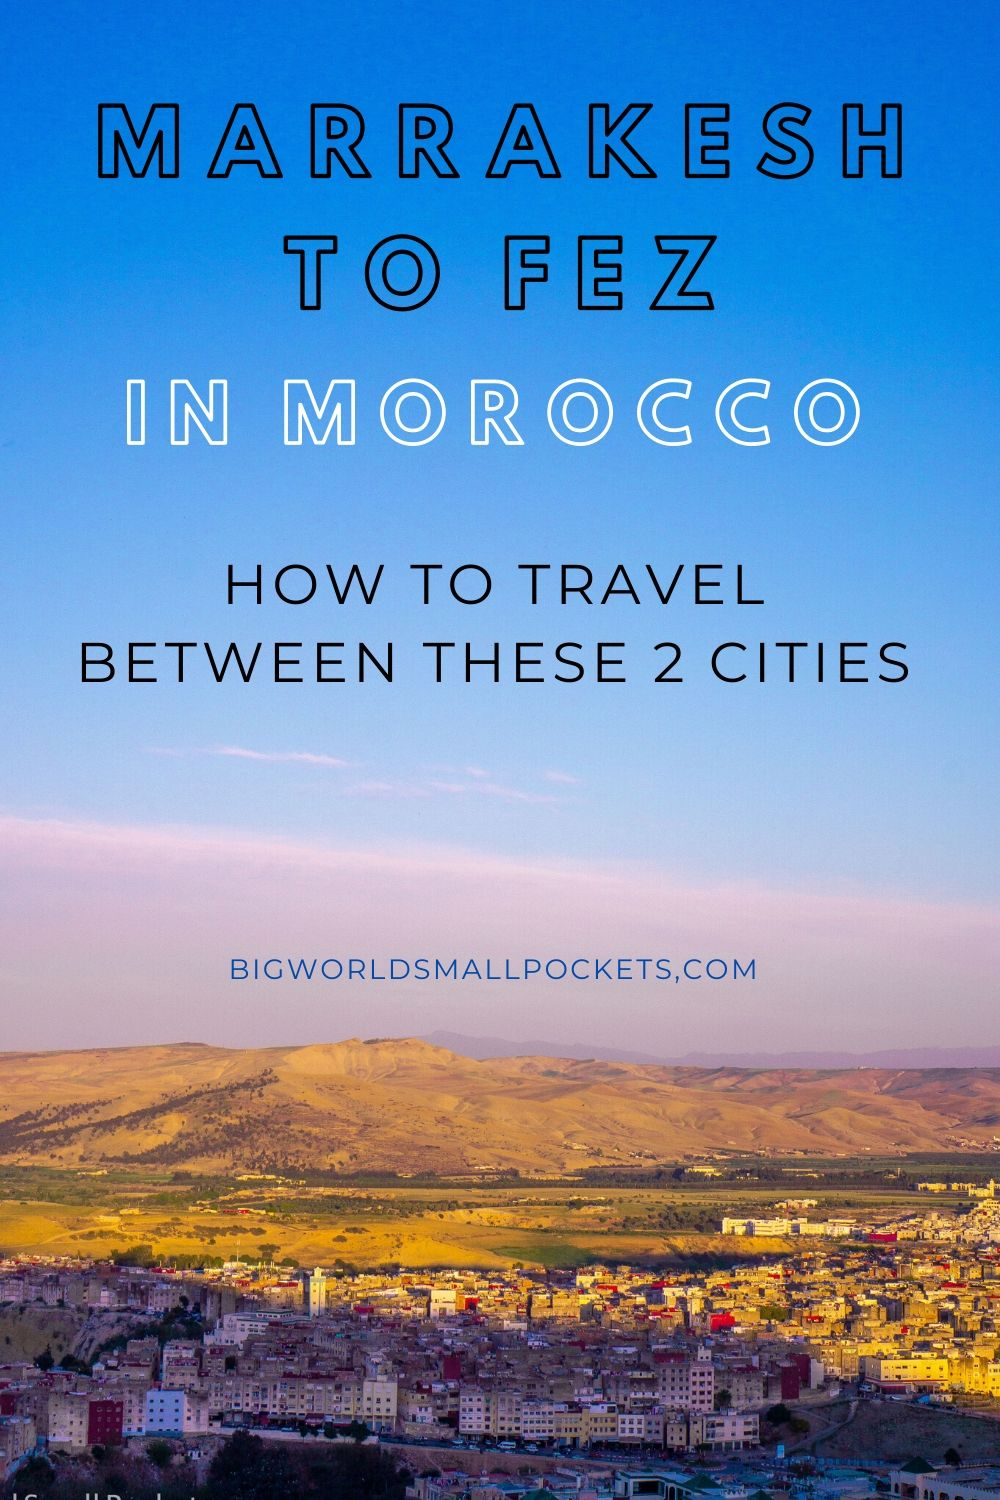 How to Travel Between Marrakesh and Fez in Morocco